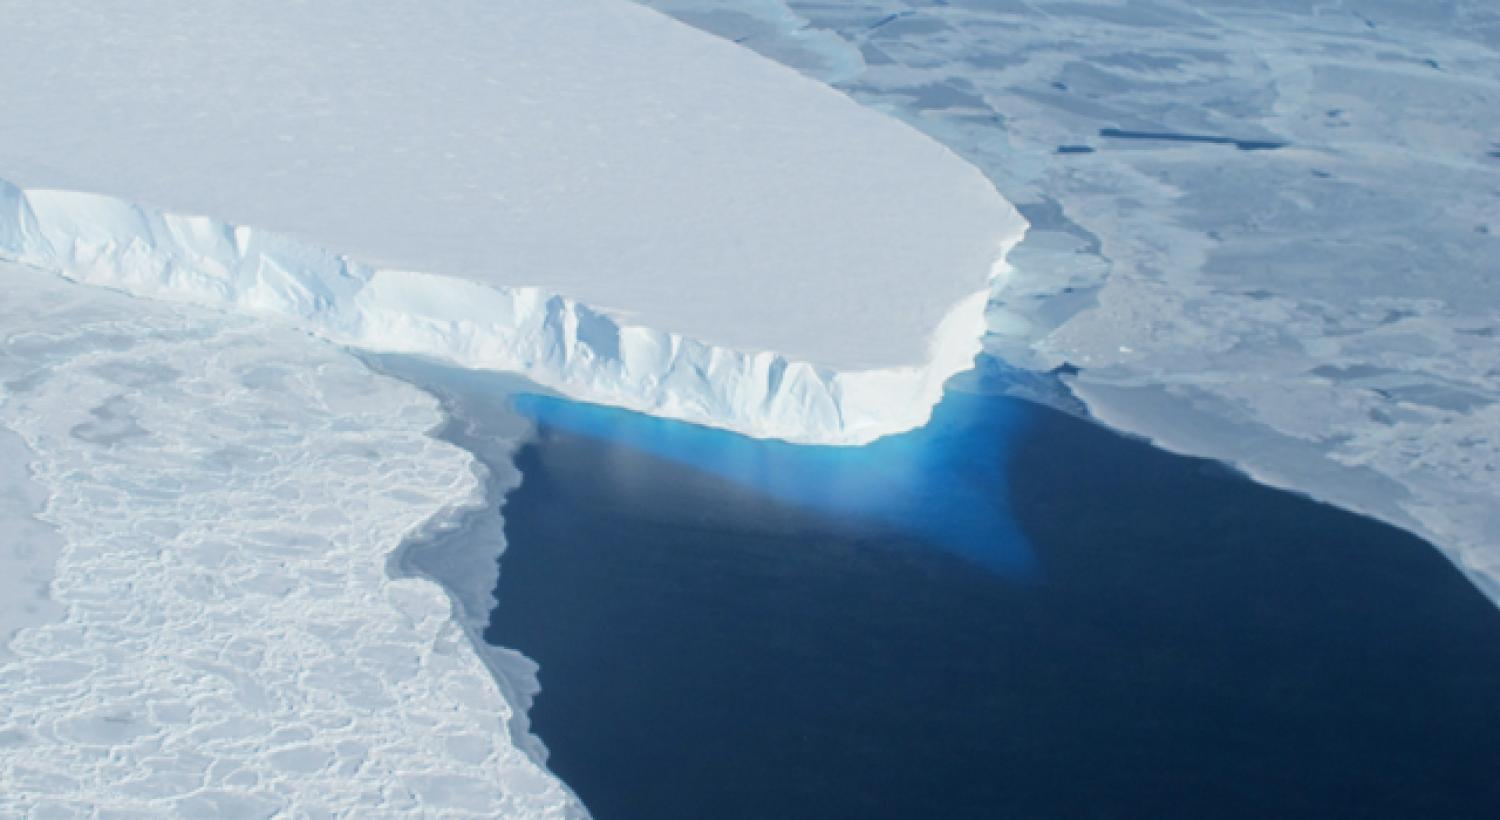 West Antarctic ice sheet